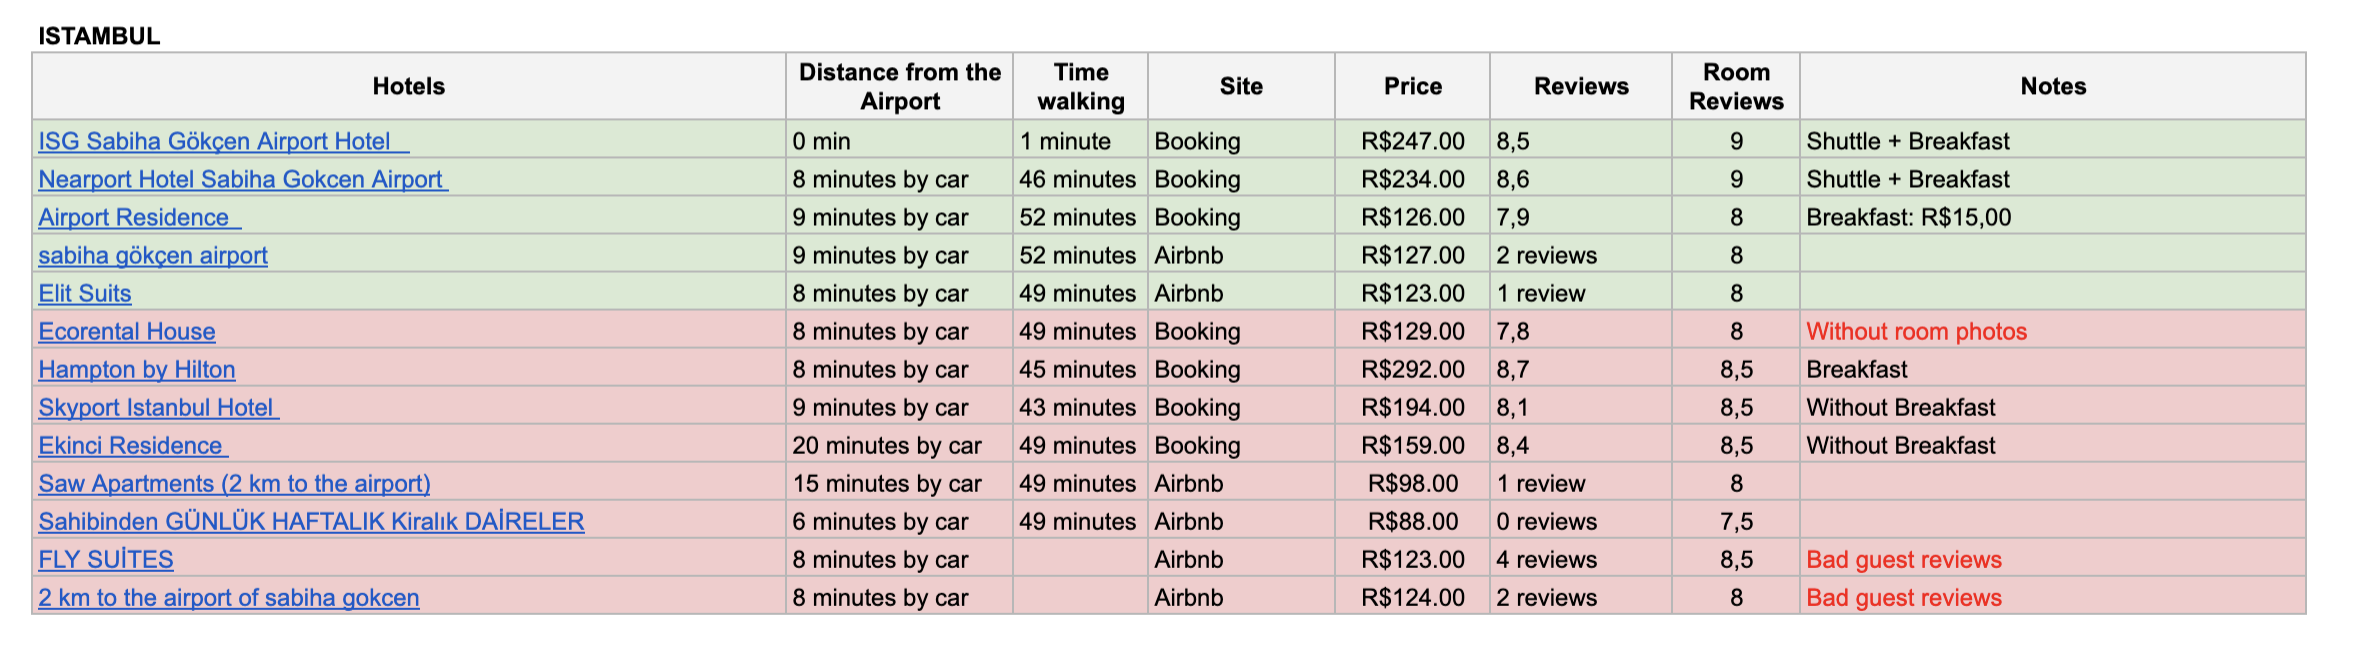 Personal analysis in excel to choose a hotel to stay in Istanbul.